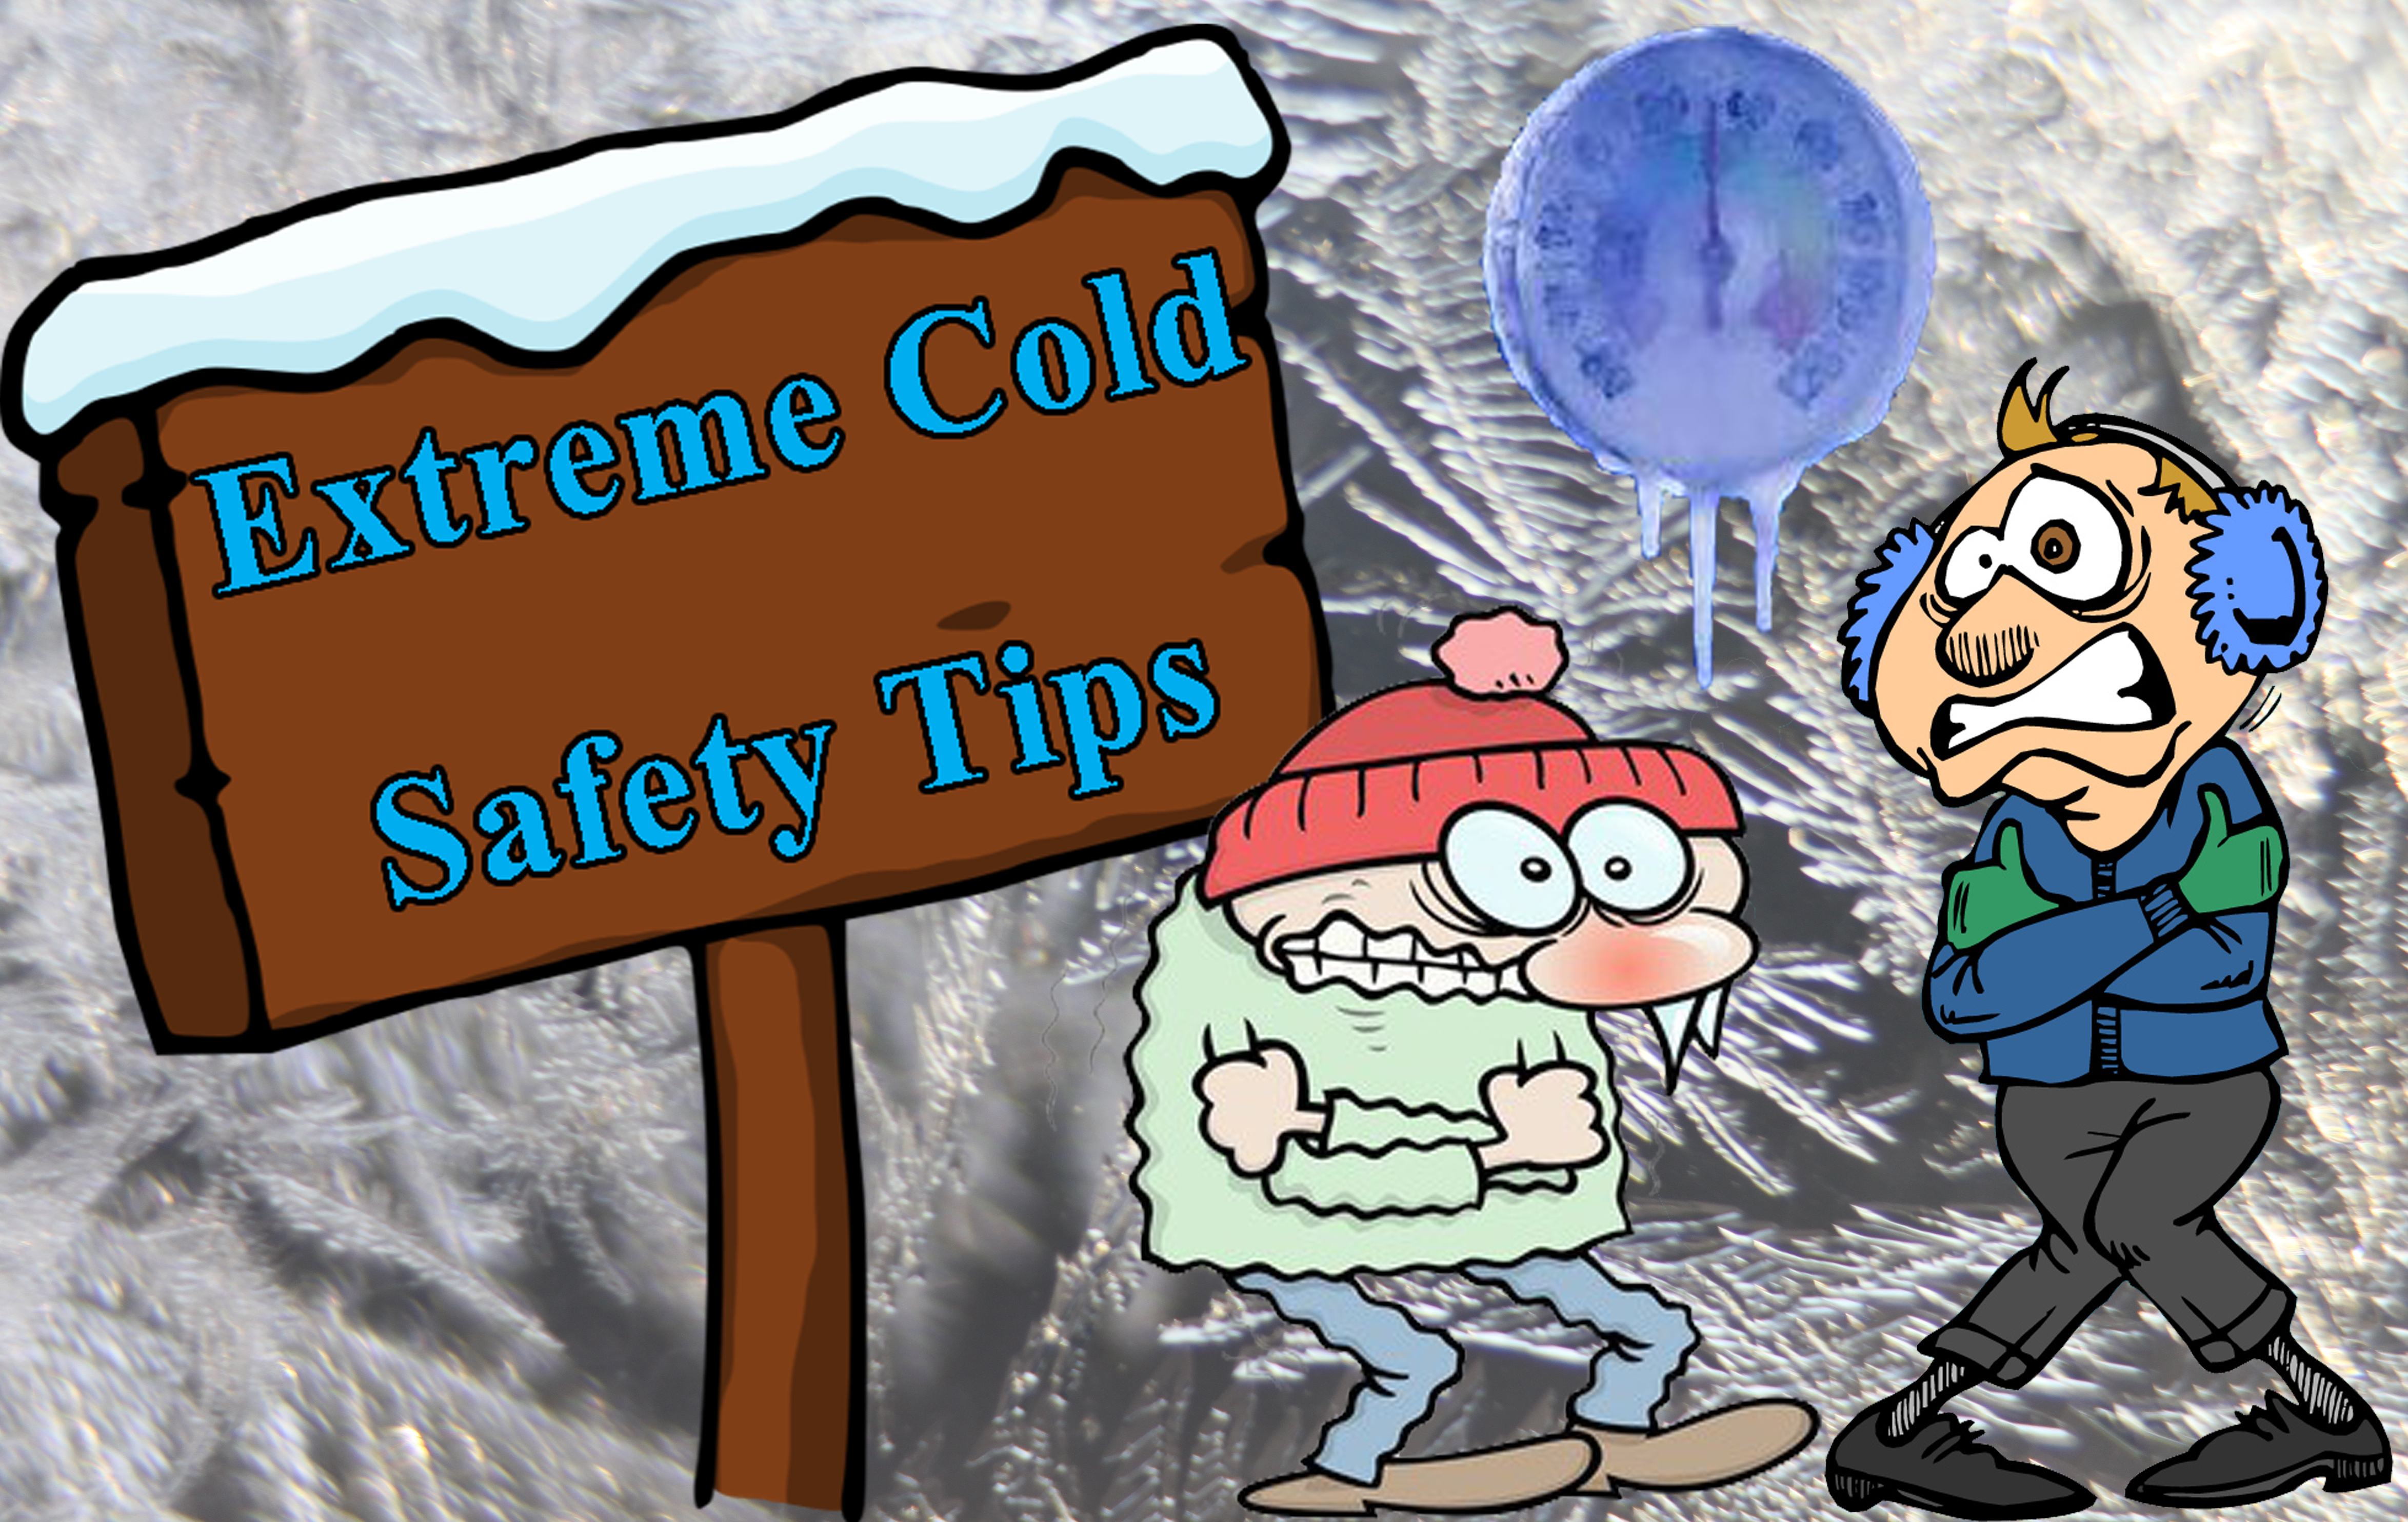 Chill clipart extreme cold ATHENS Extreme OFFERS Cold FOR